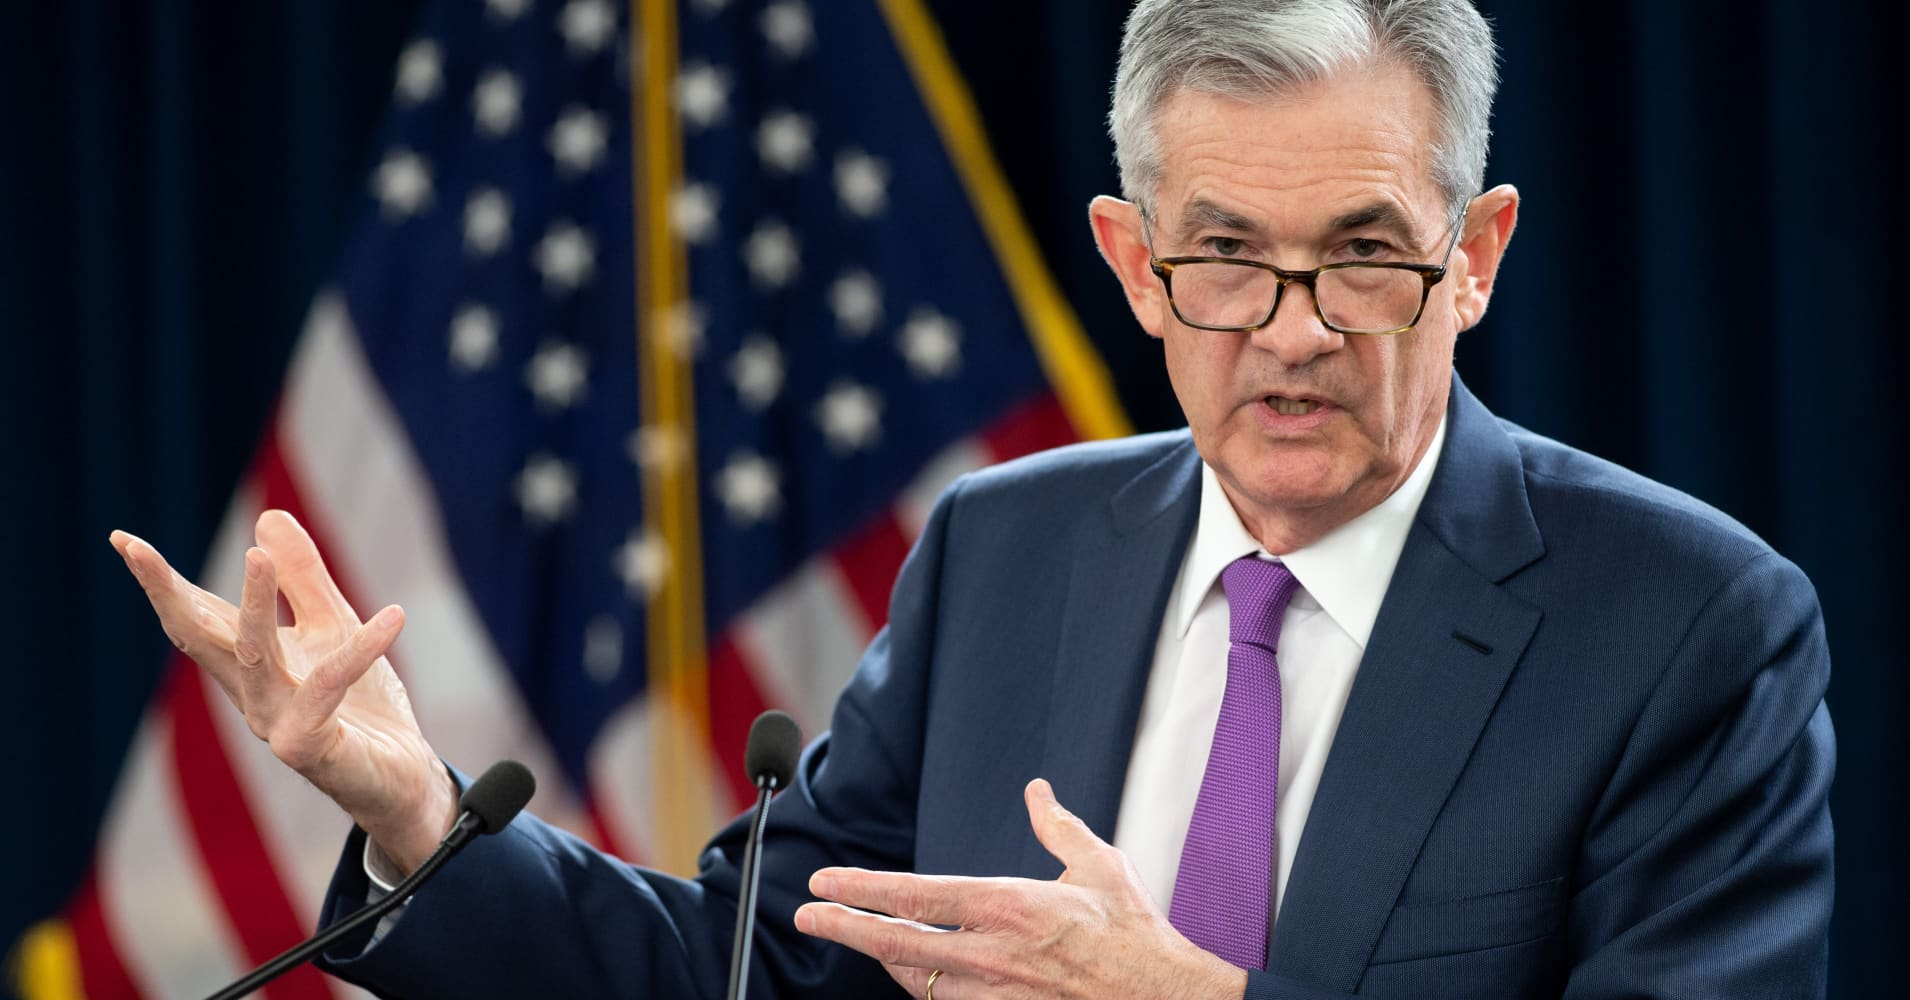 We're about to find out why the Federal Reserve did its policy U-turn which sent markets higher